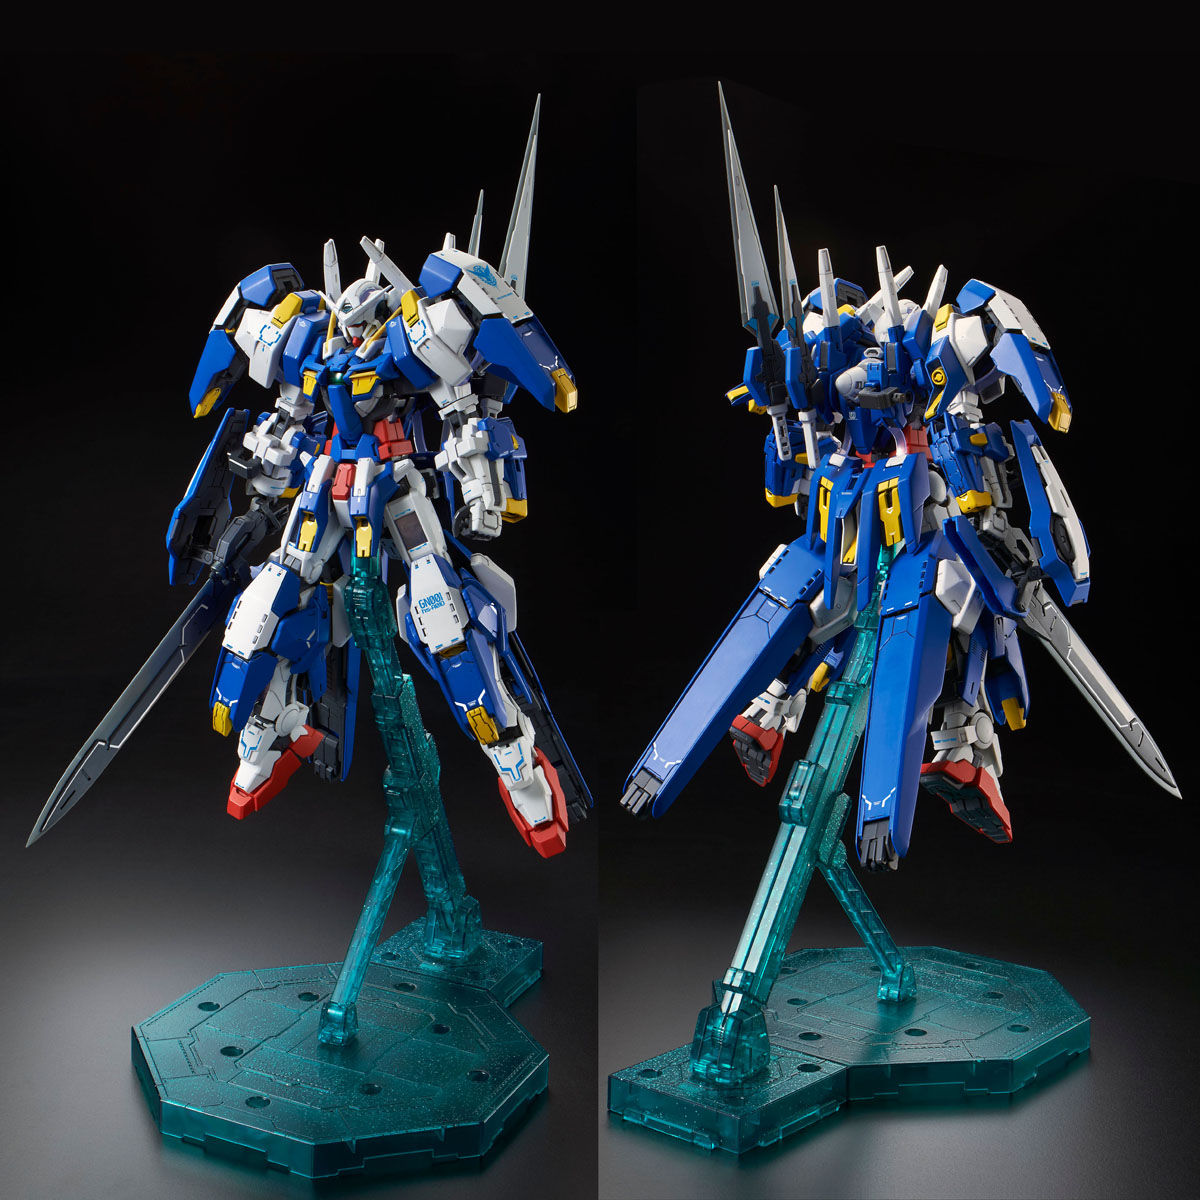 71489MG 1/100 GN-001/hs-A01D ガンダムアヴァランチエクシアダッシュ [Gundam Avalanche Exia']